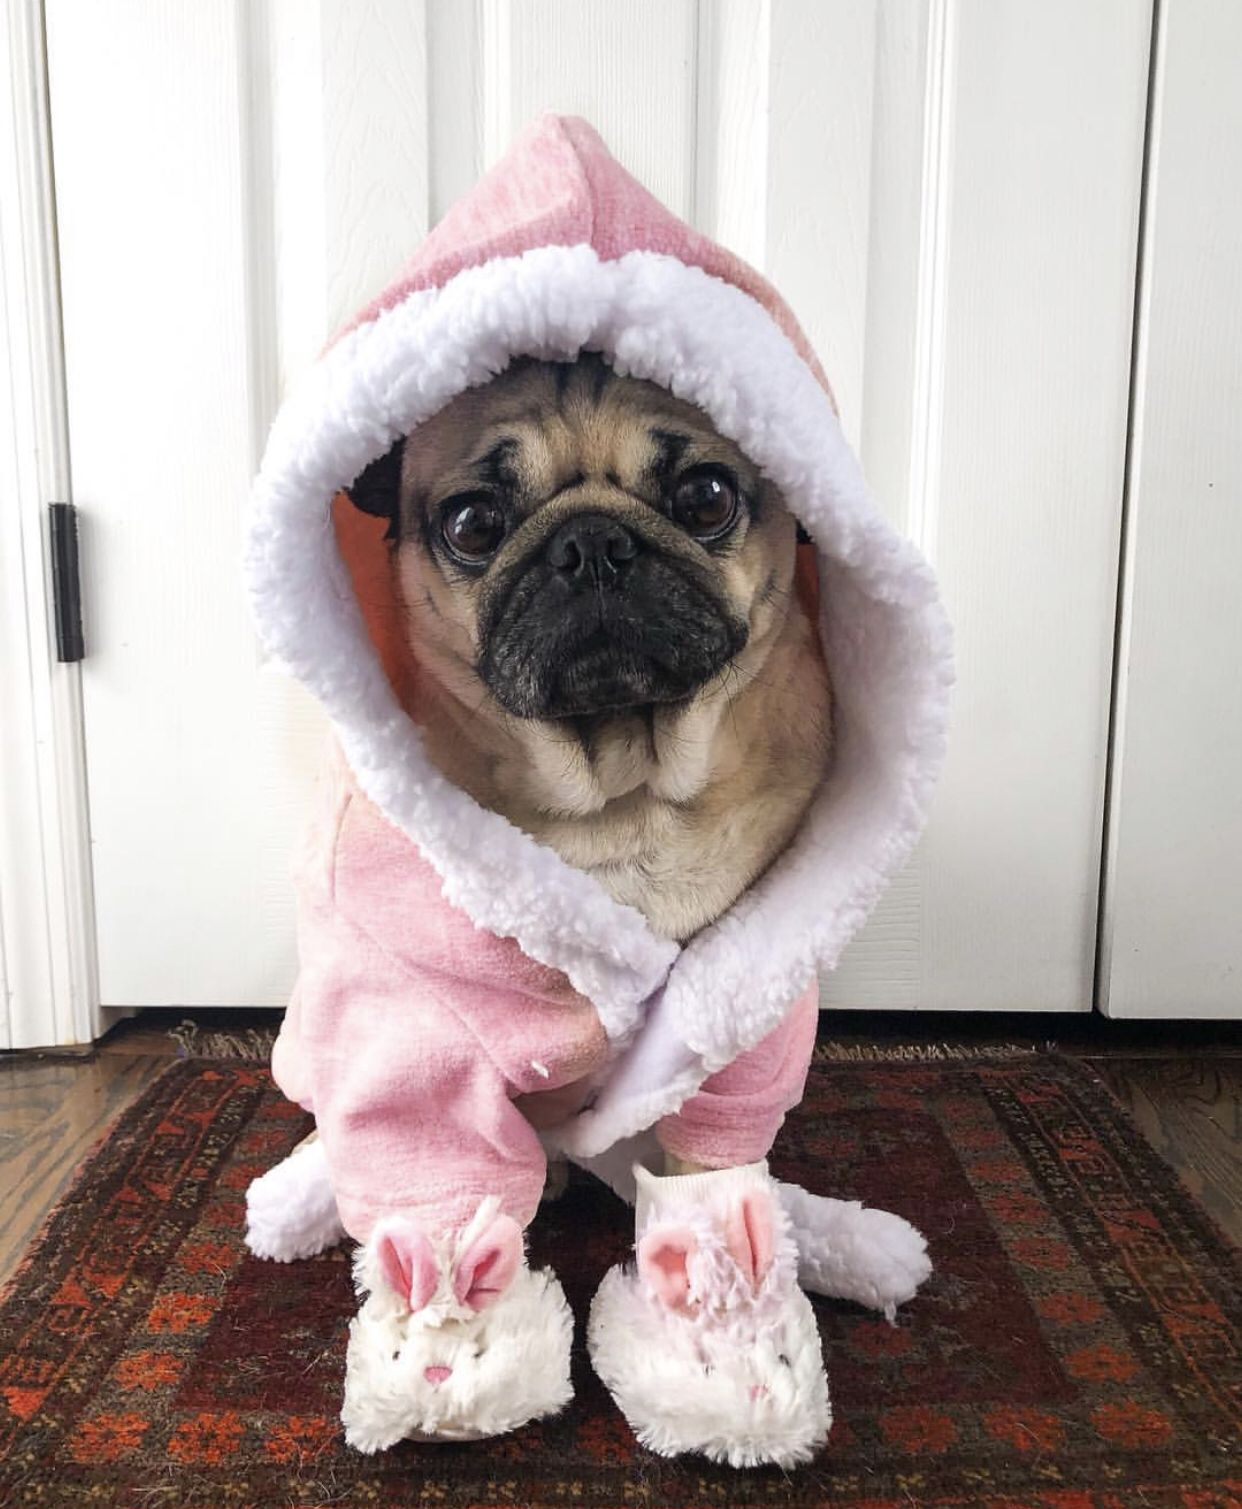 Pin By Shannon Fowler On The Pug Life Pugs Cute Cats Fashion